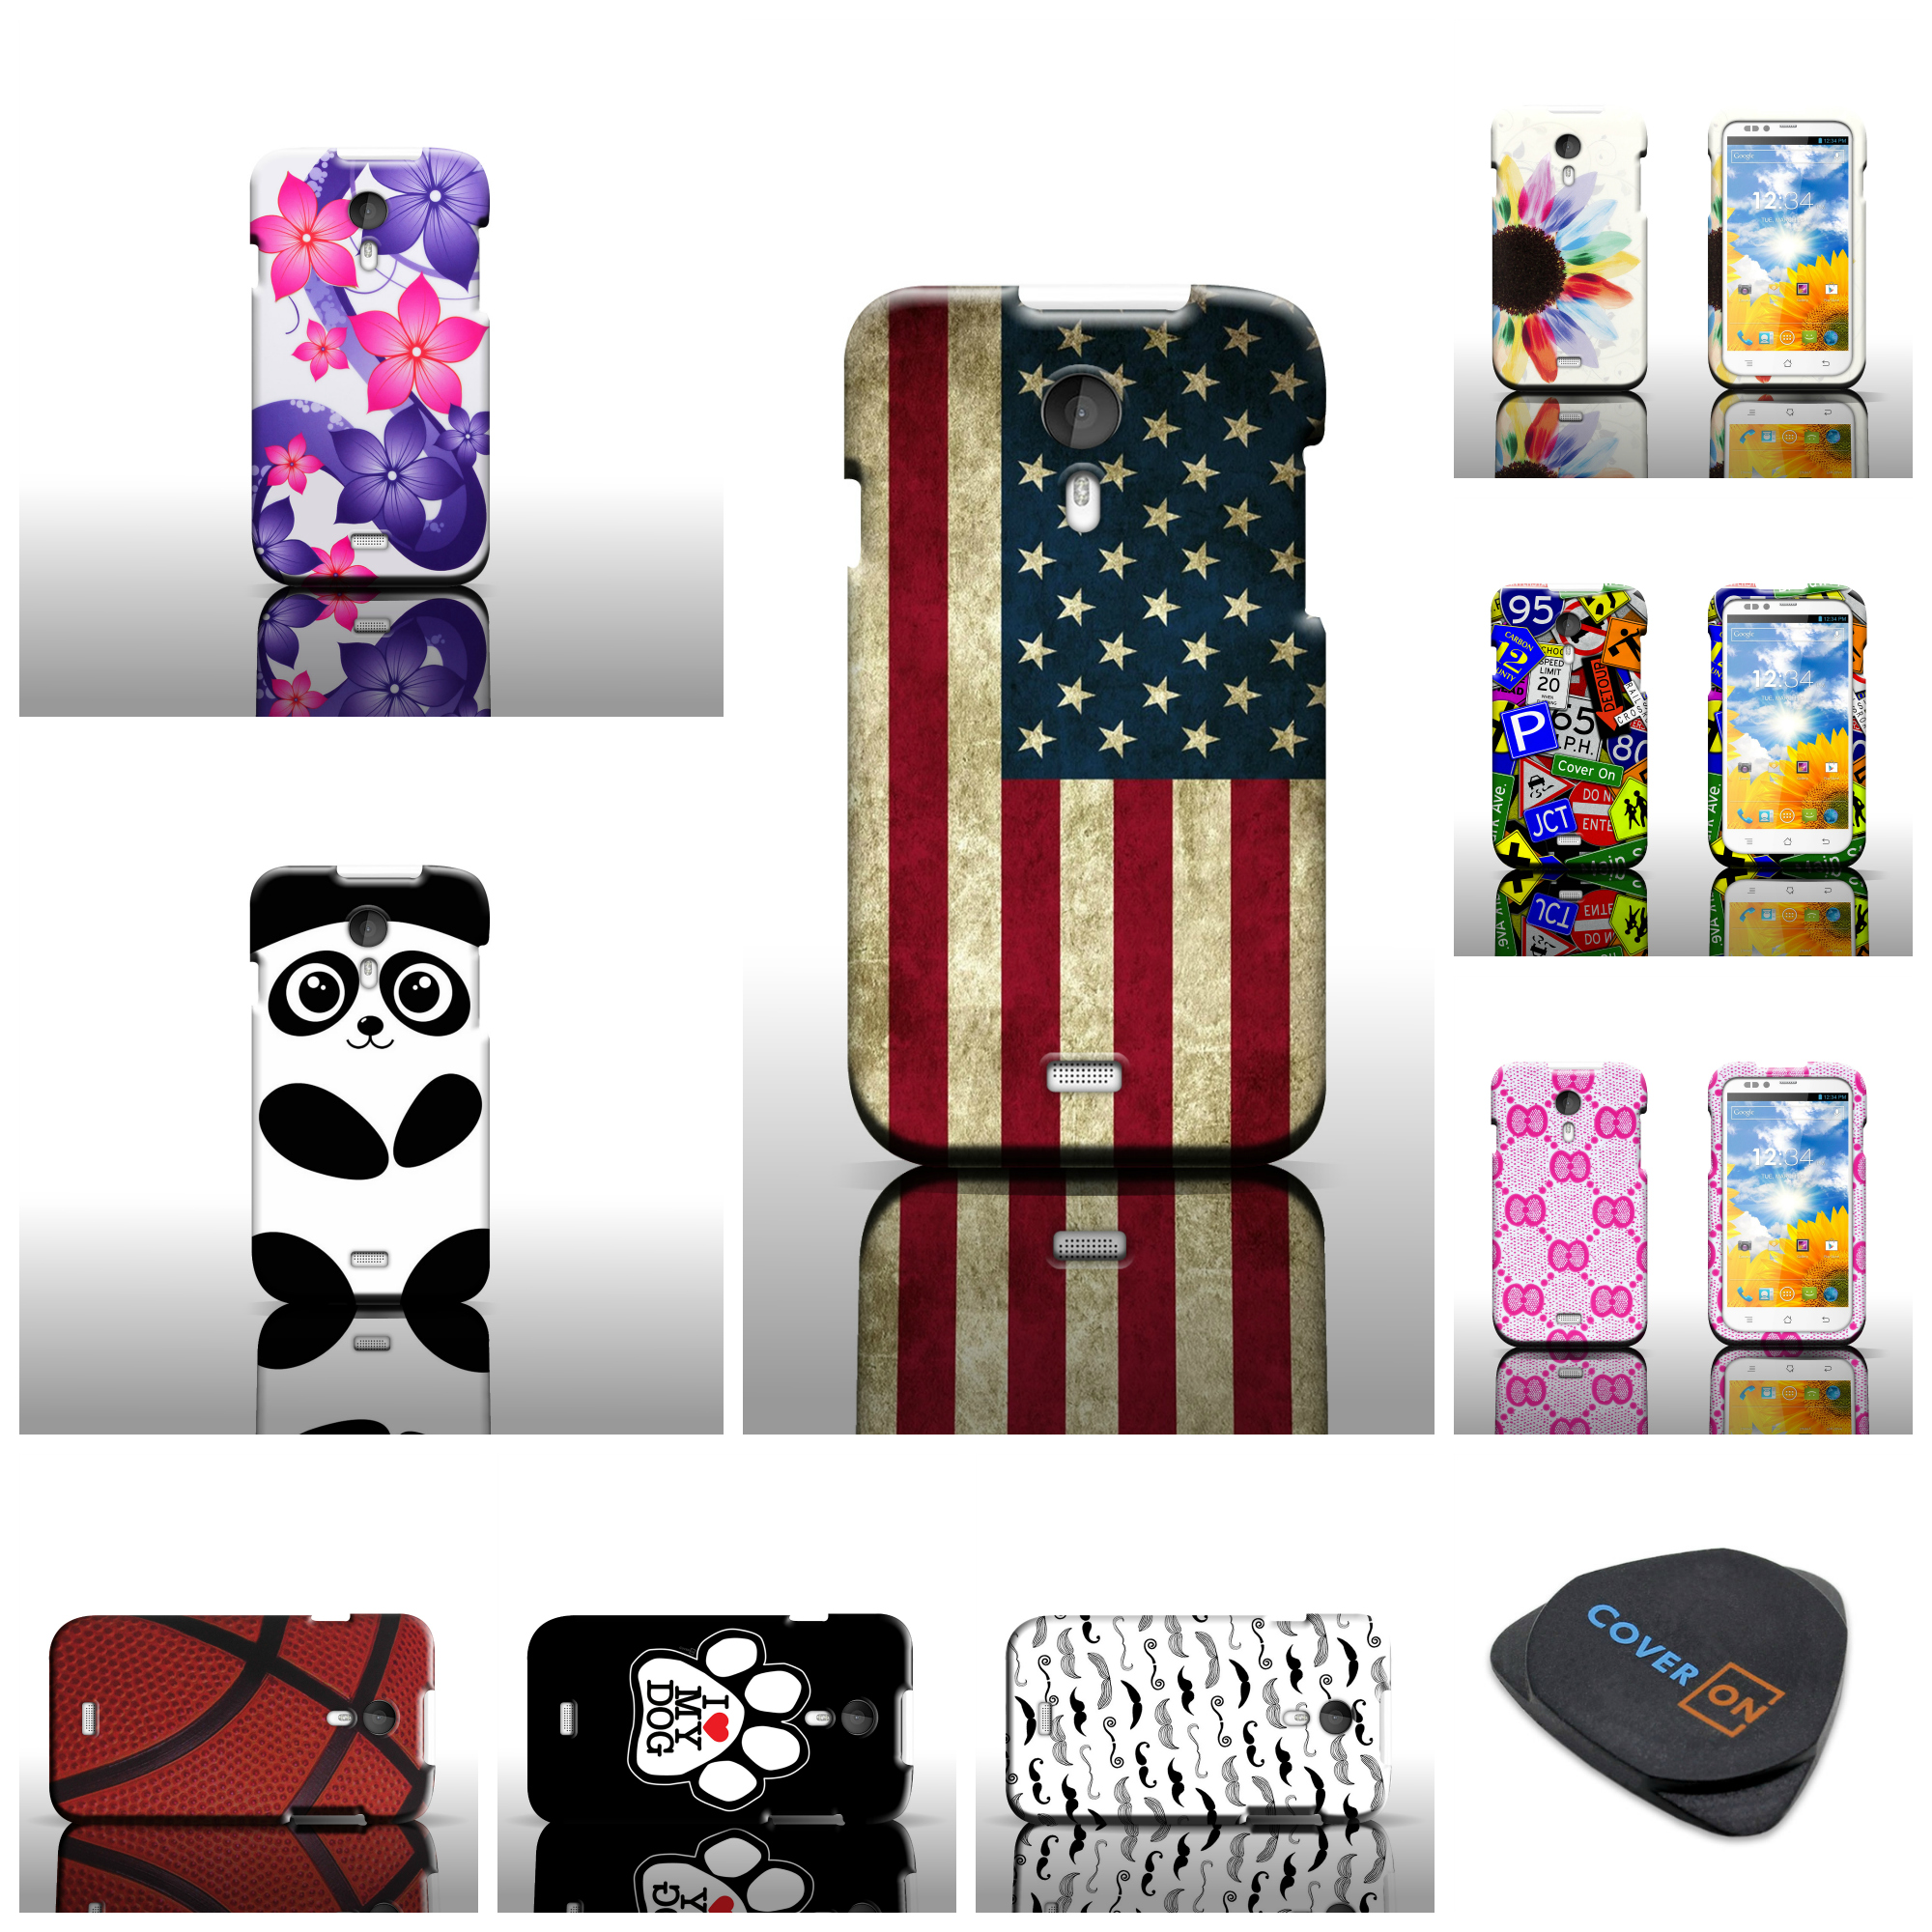 Aliexpress Flip Pu Leather Case Cover For Bush Spira C1 5 0 Android Cell Phone Shipping From Reliable Round Suppliers On Online